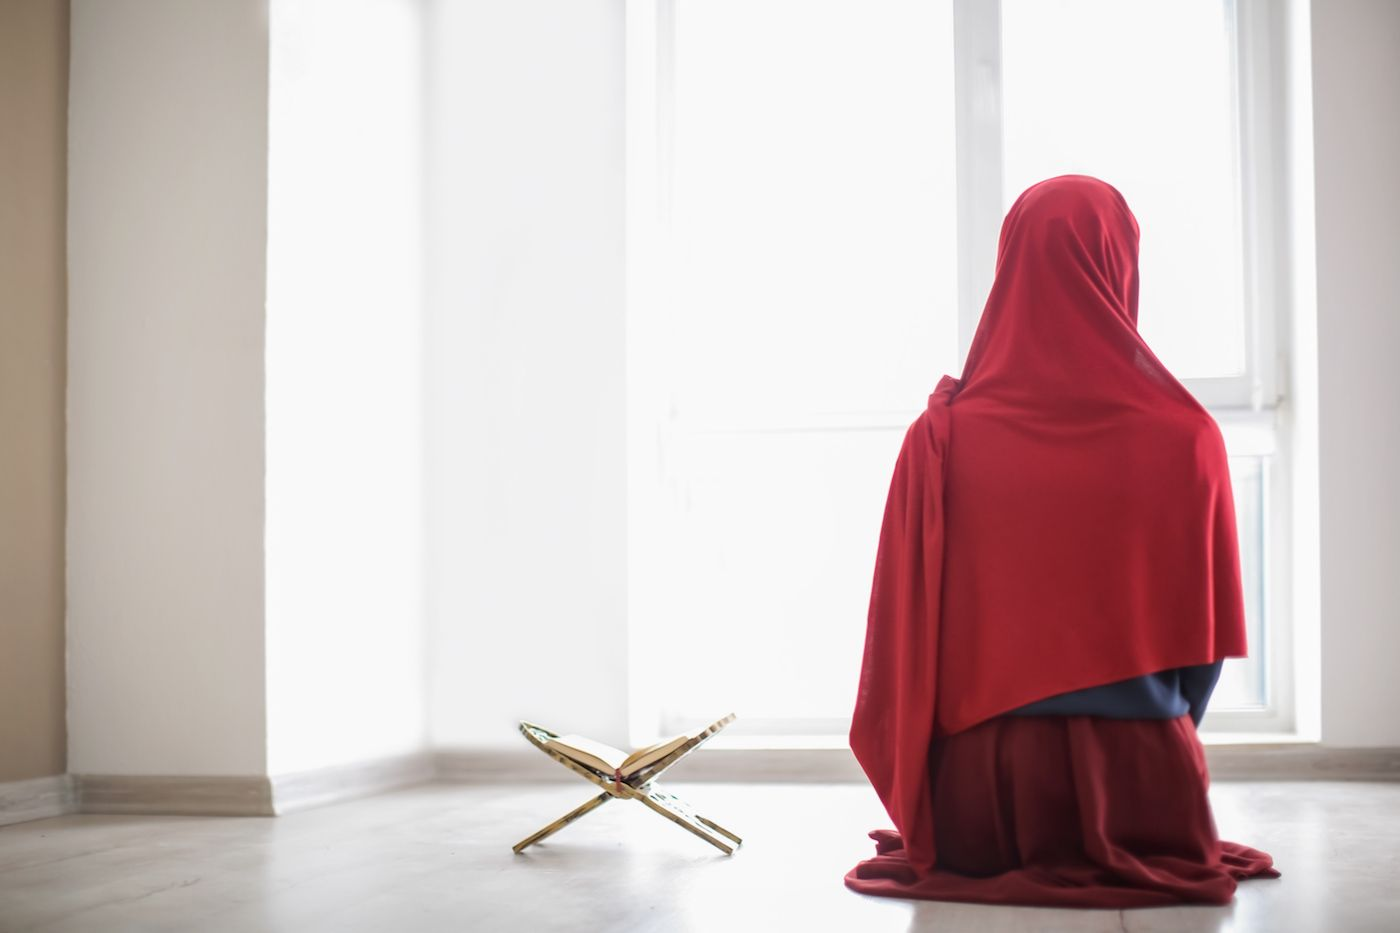 Does Islam Forbid Women from Leaving the Home? Deconstructing the Myth